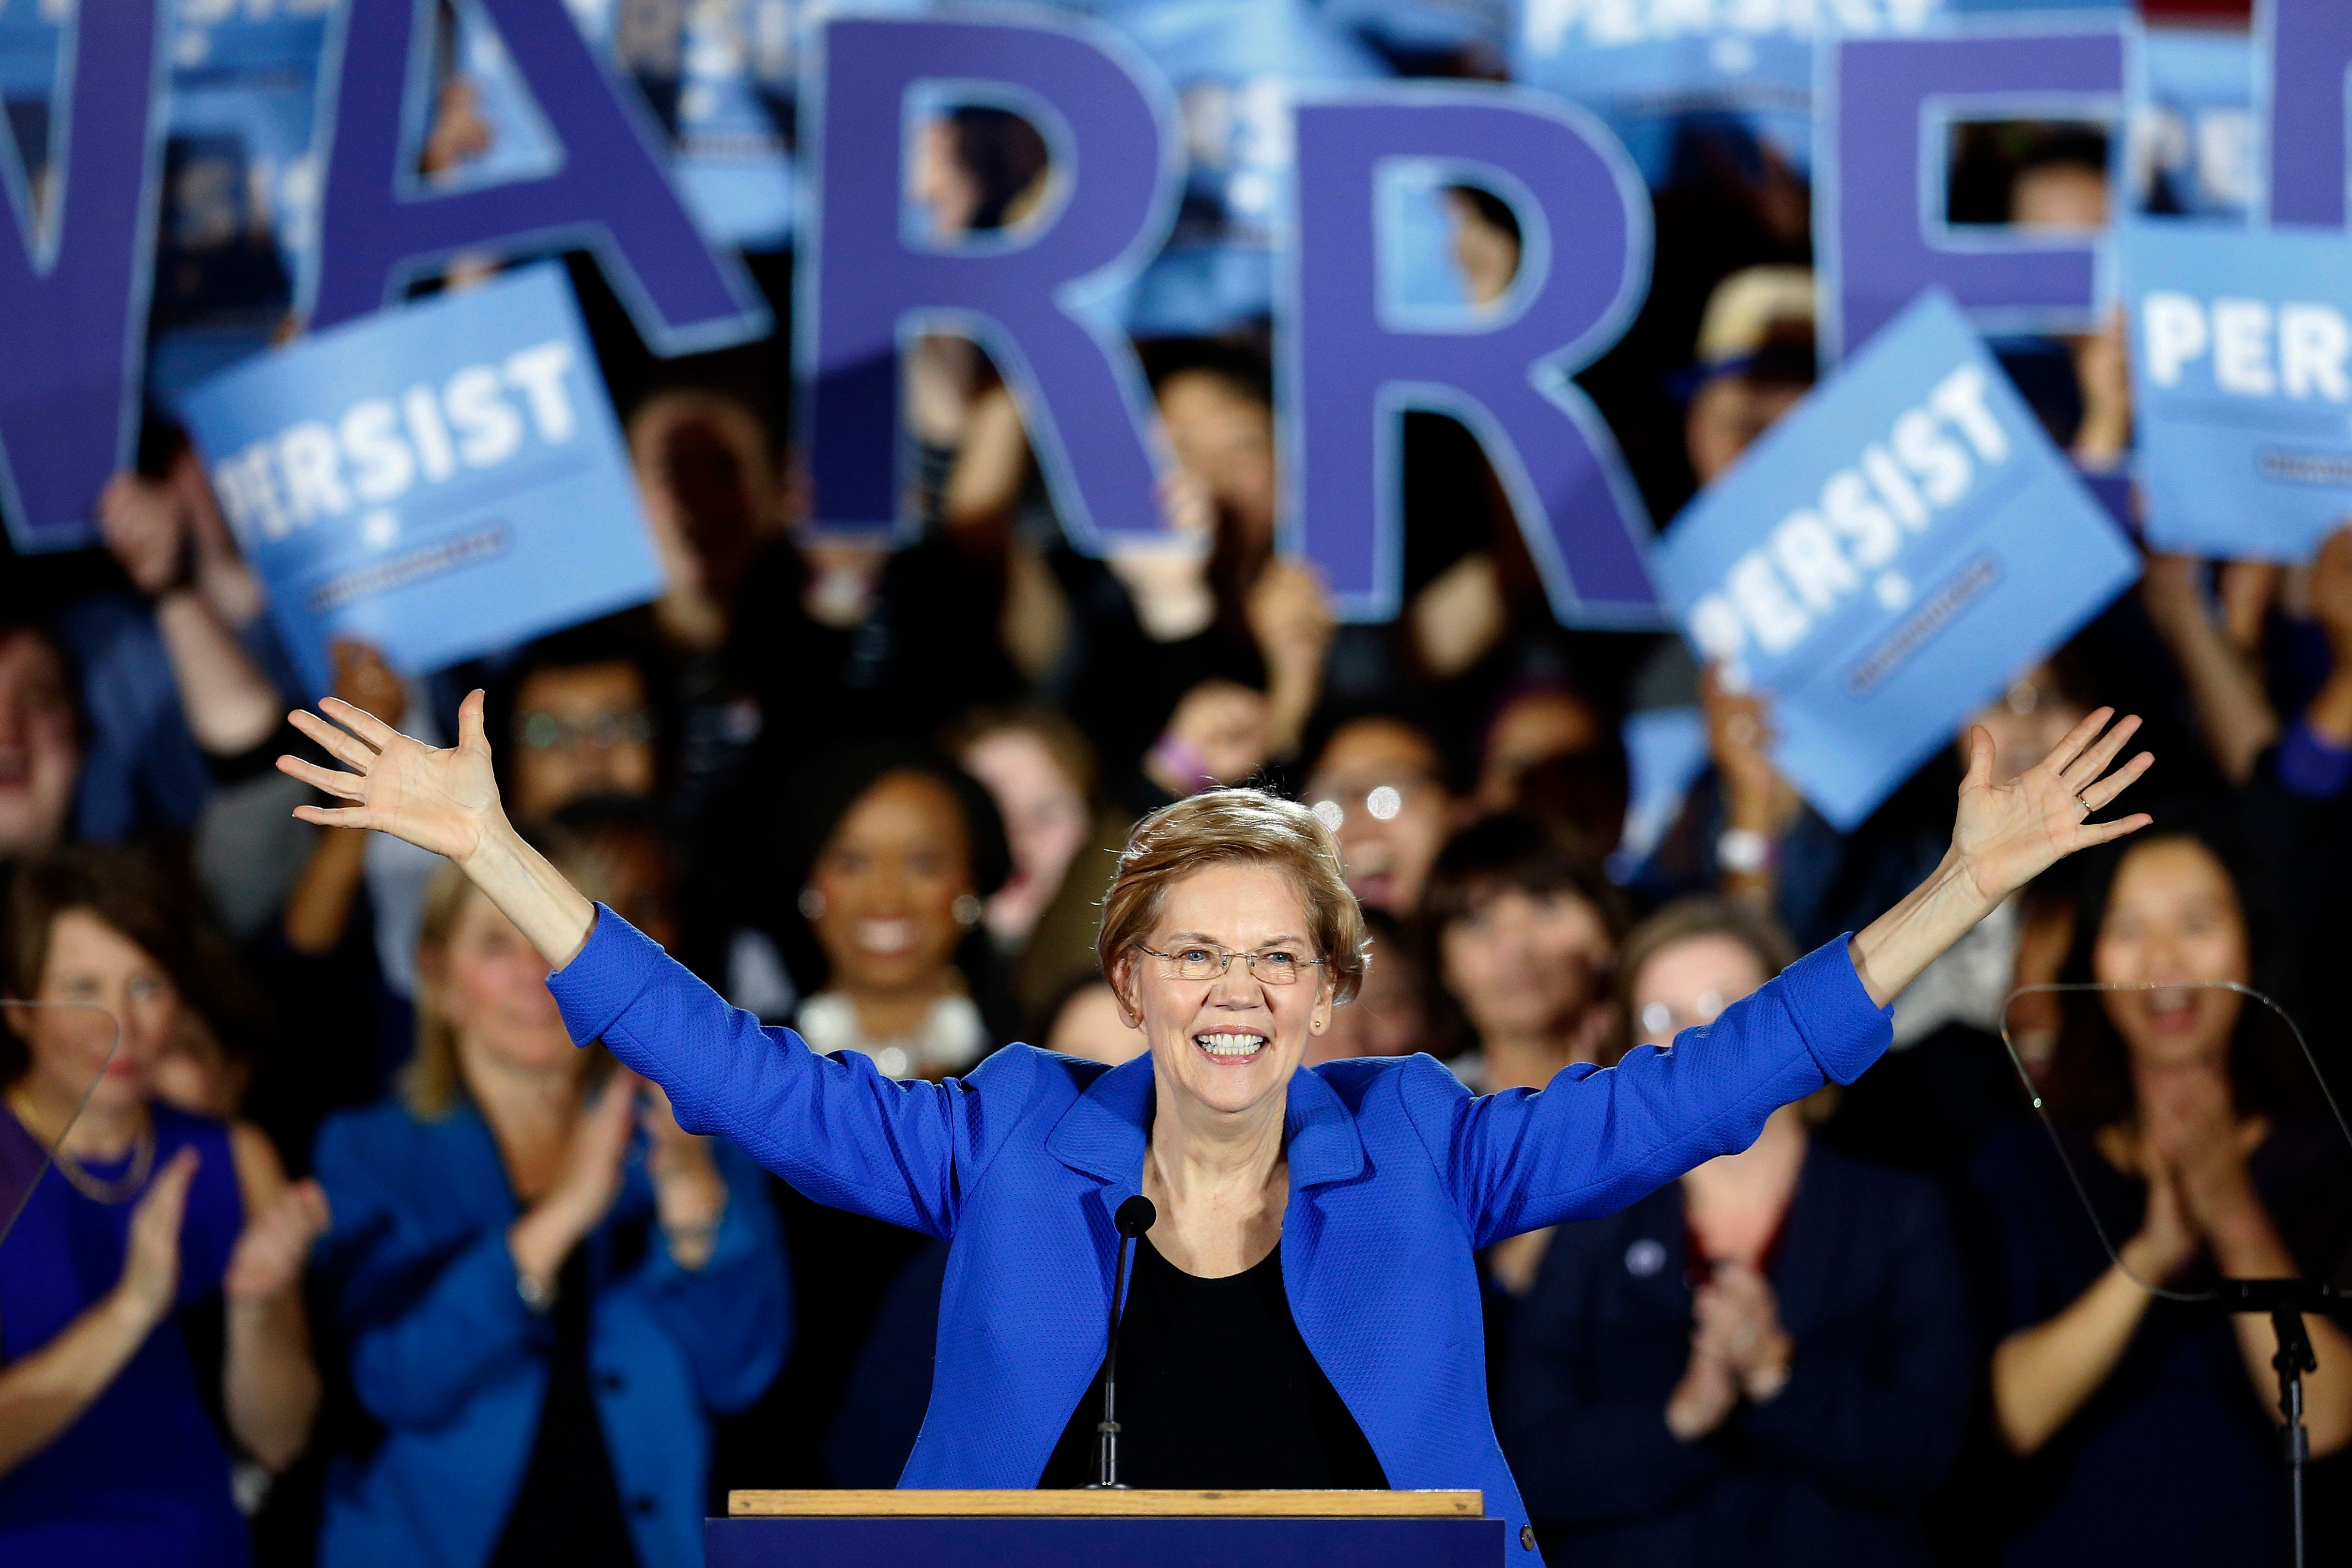 FILE - In this Nov. 6, 2018, file photo, Sen. Elizabeth Warren, D-Mass., gives her victory speech at a Democratic election watch party in Boston. Even before they announce their White House intentions, New Hampshire's ambitious neighbors are in the midst of a shadow campaign to shape the nation's first presidential primary election of the 2020 season. (AP Photo/Michael Dwyer, File)